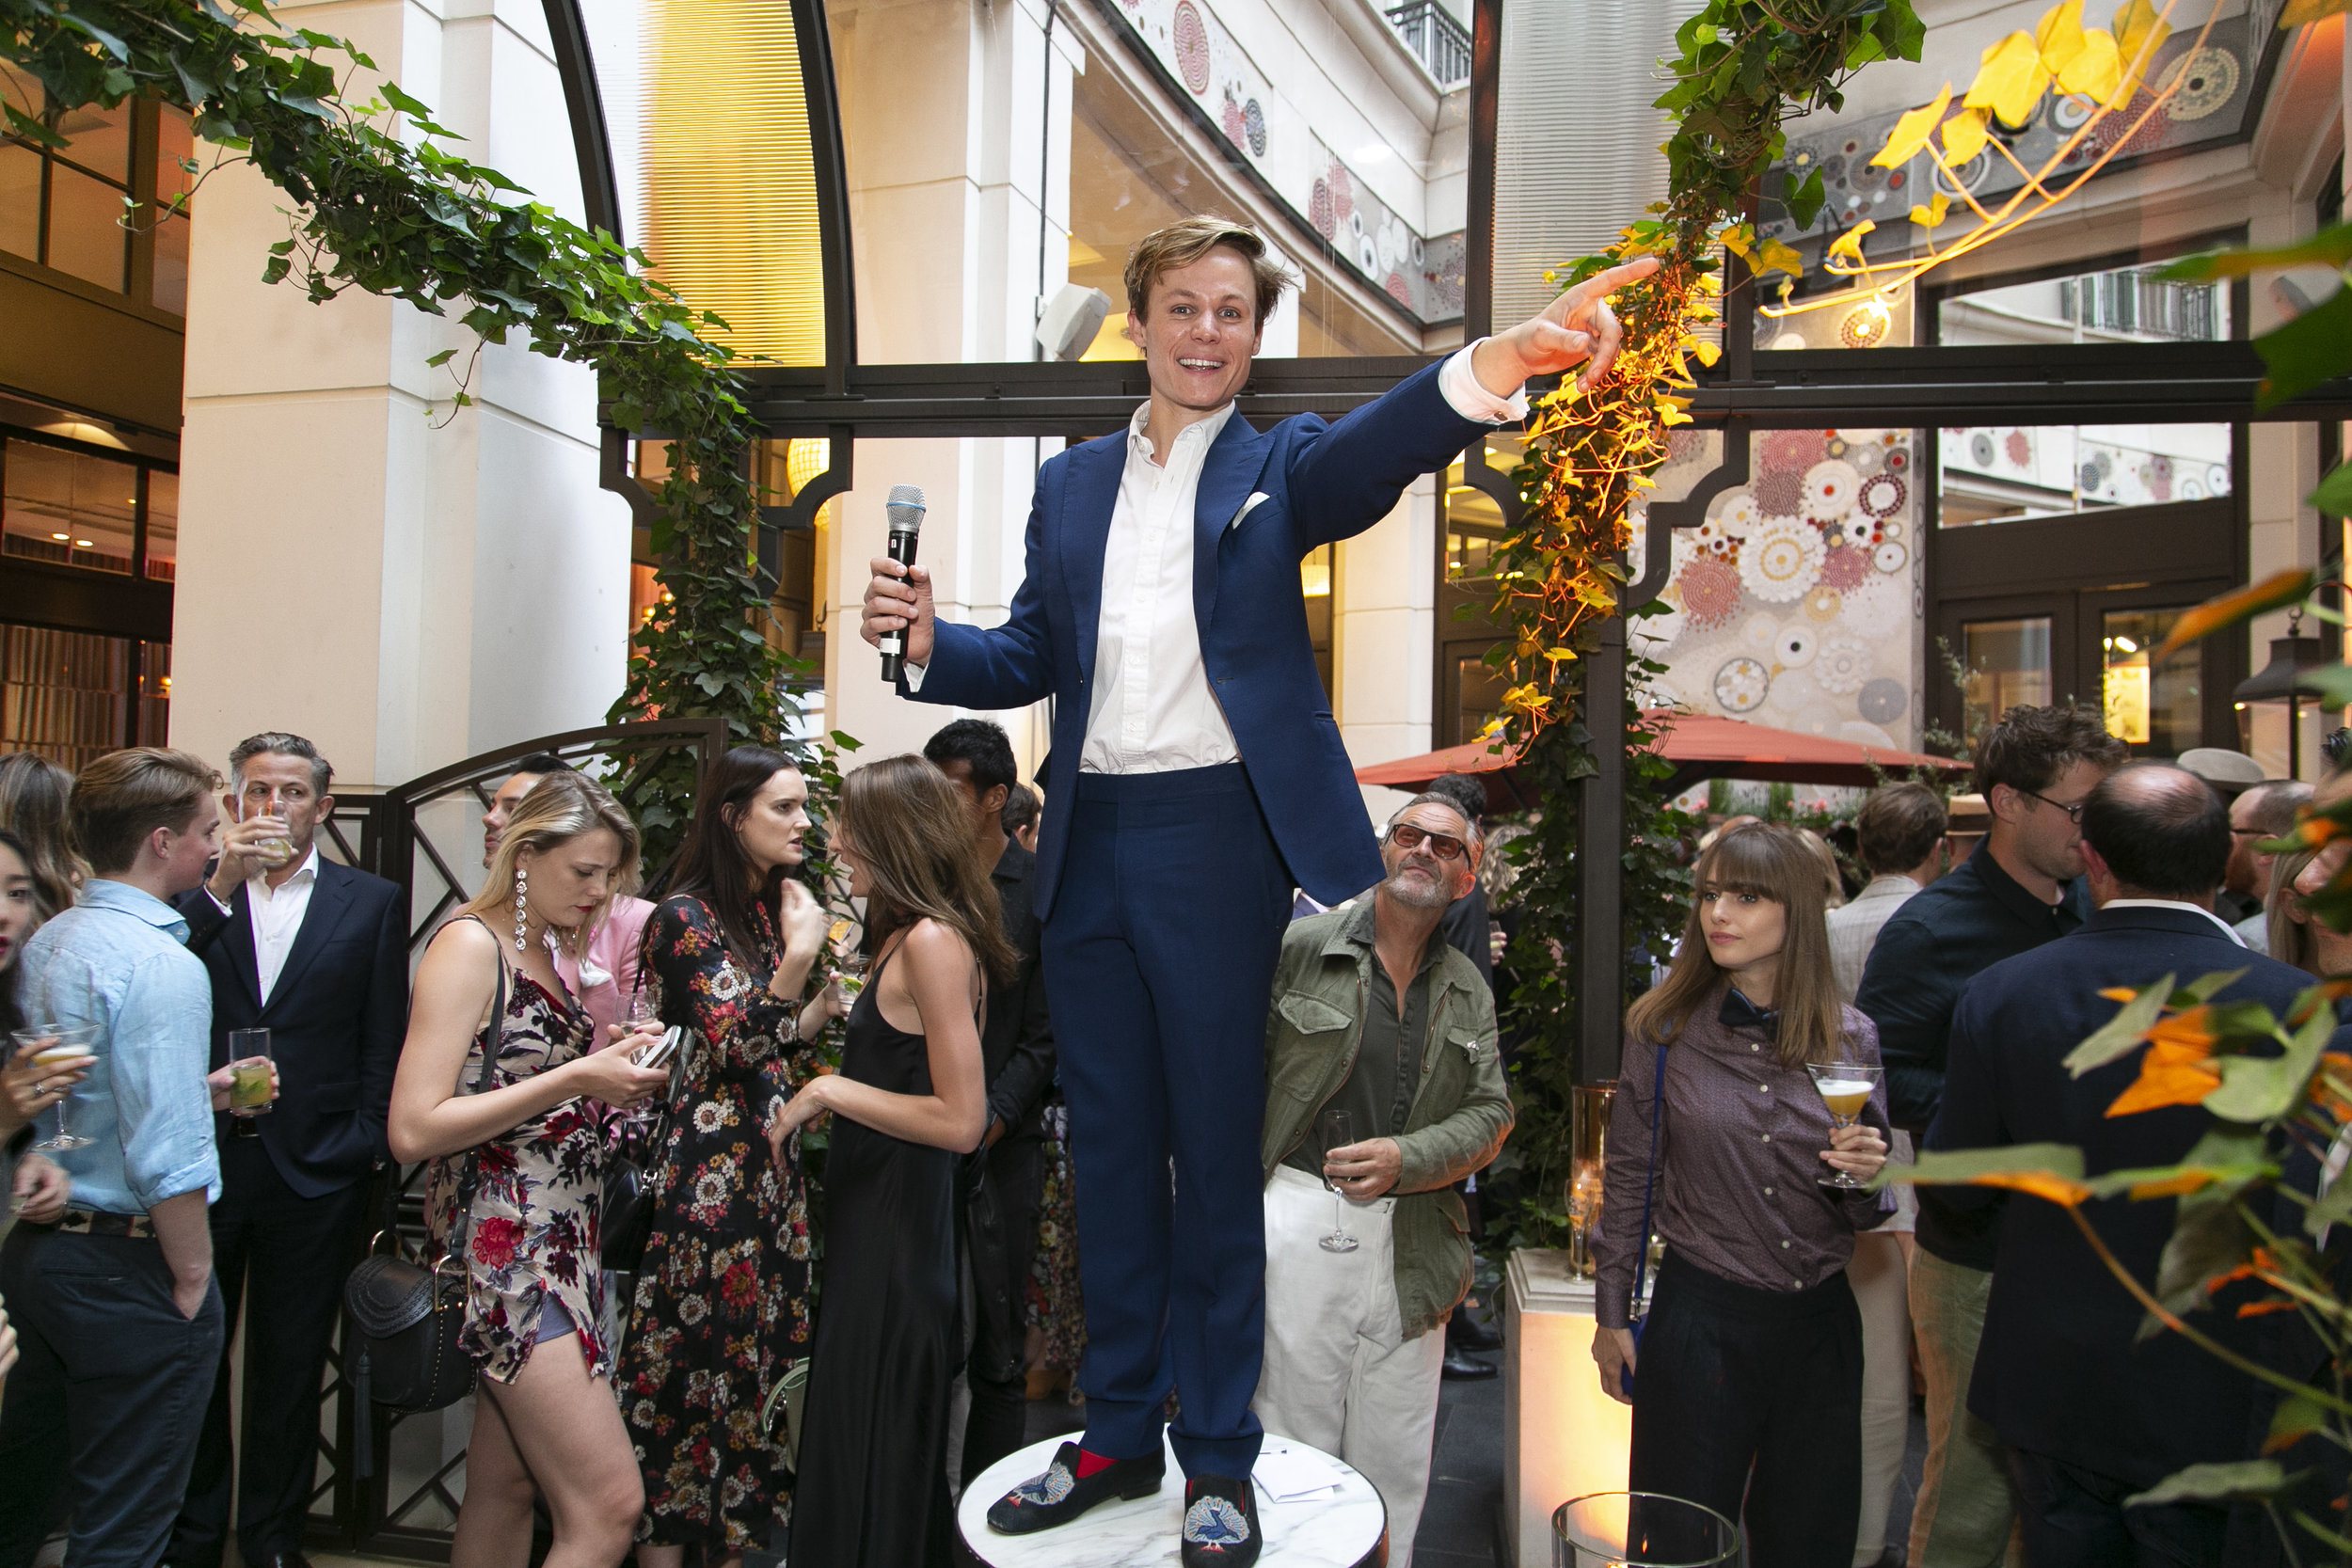 Following the most wonderful summer party collaboration with The Rake magazine at the Corinthia Hotel London, the Be Well Collective is thrilled to announce that we raised  £55,699